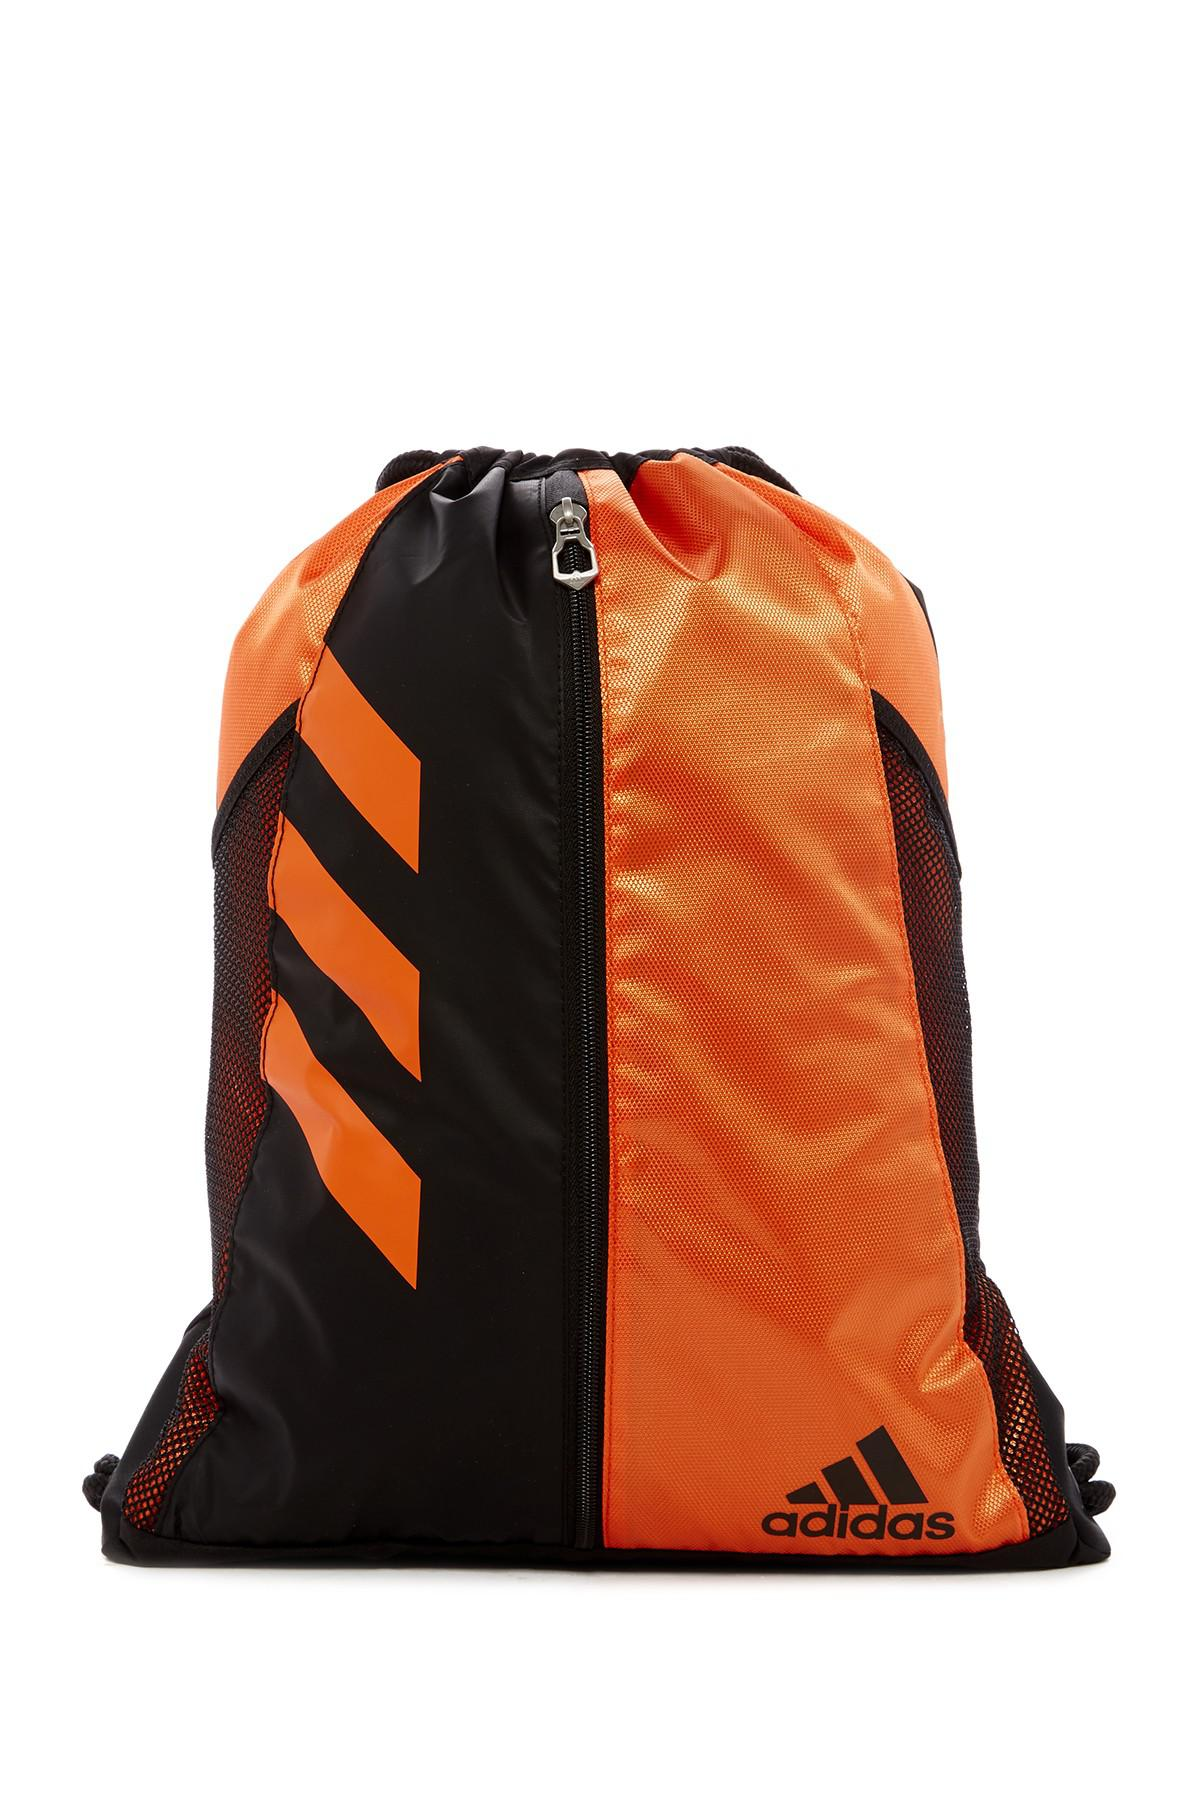 52caf11601a9 Lyst - Adidas Originals Team Issue Sackpack for Men